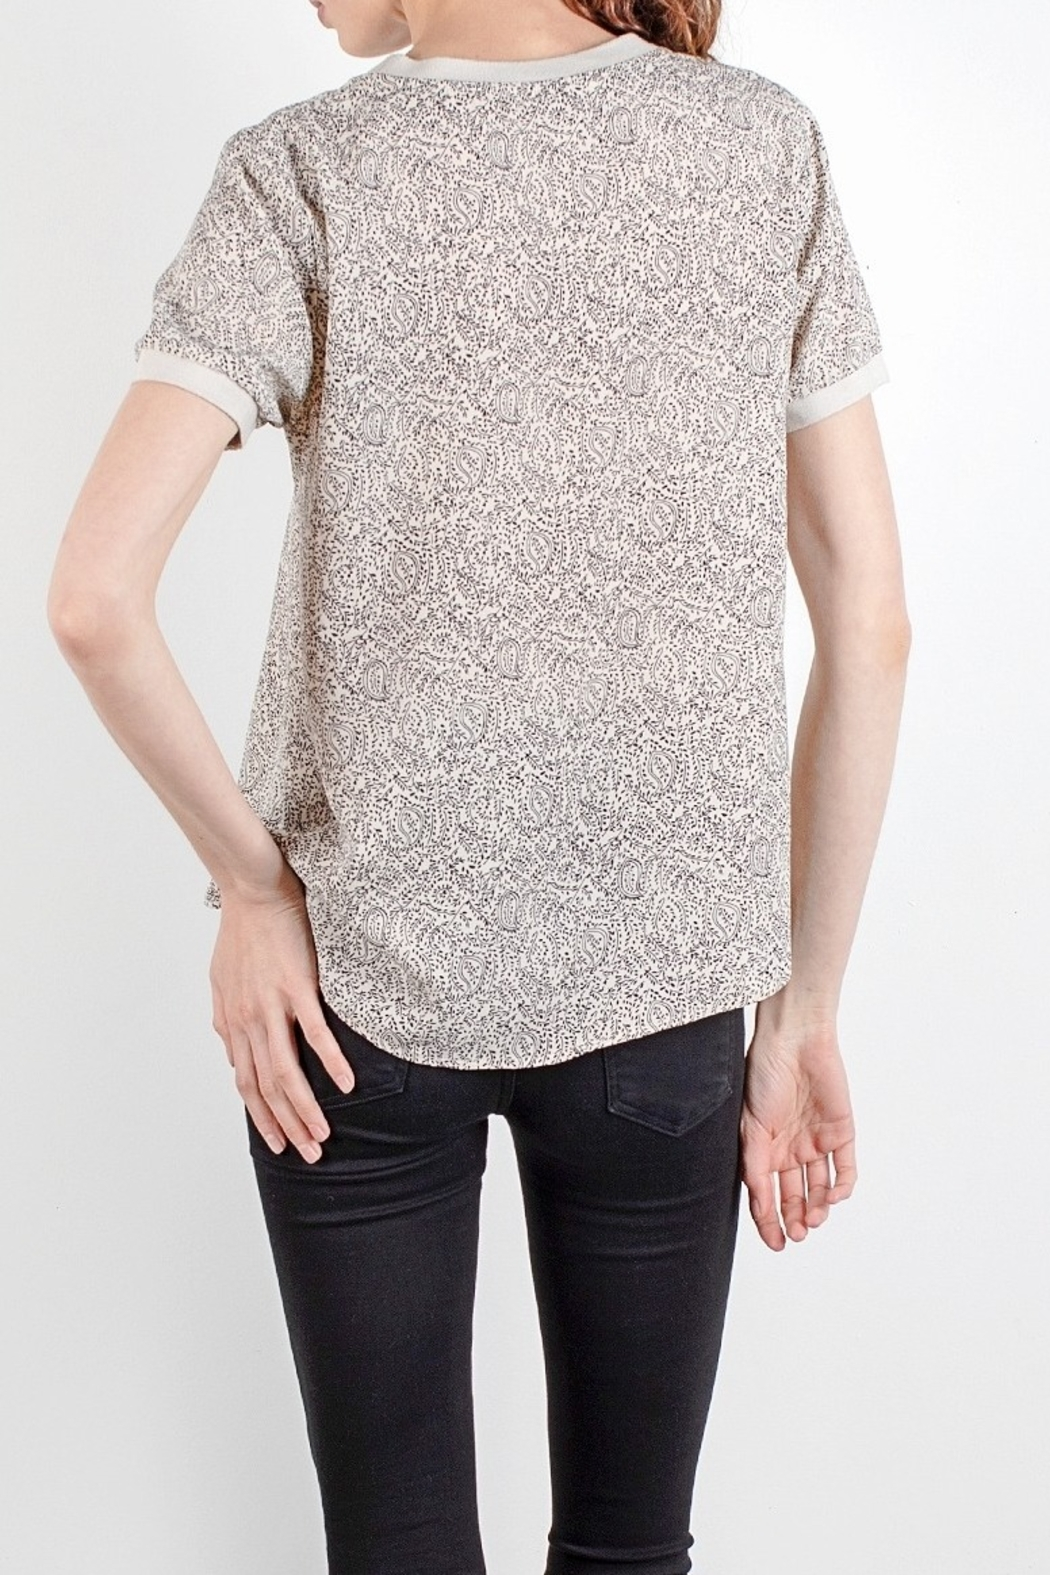 Mod Ref Paisley printed short sleeve top - Front Full Image